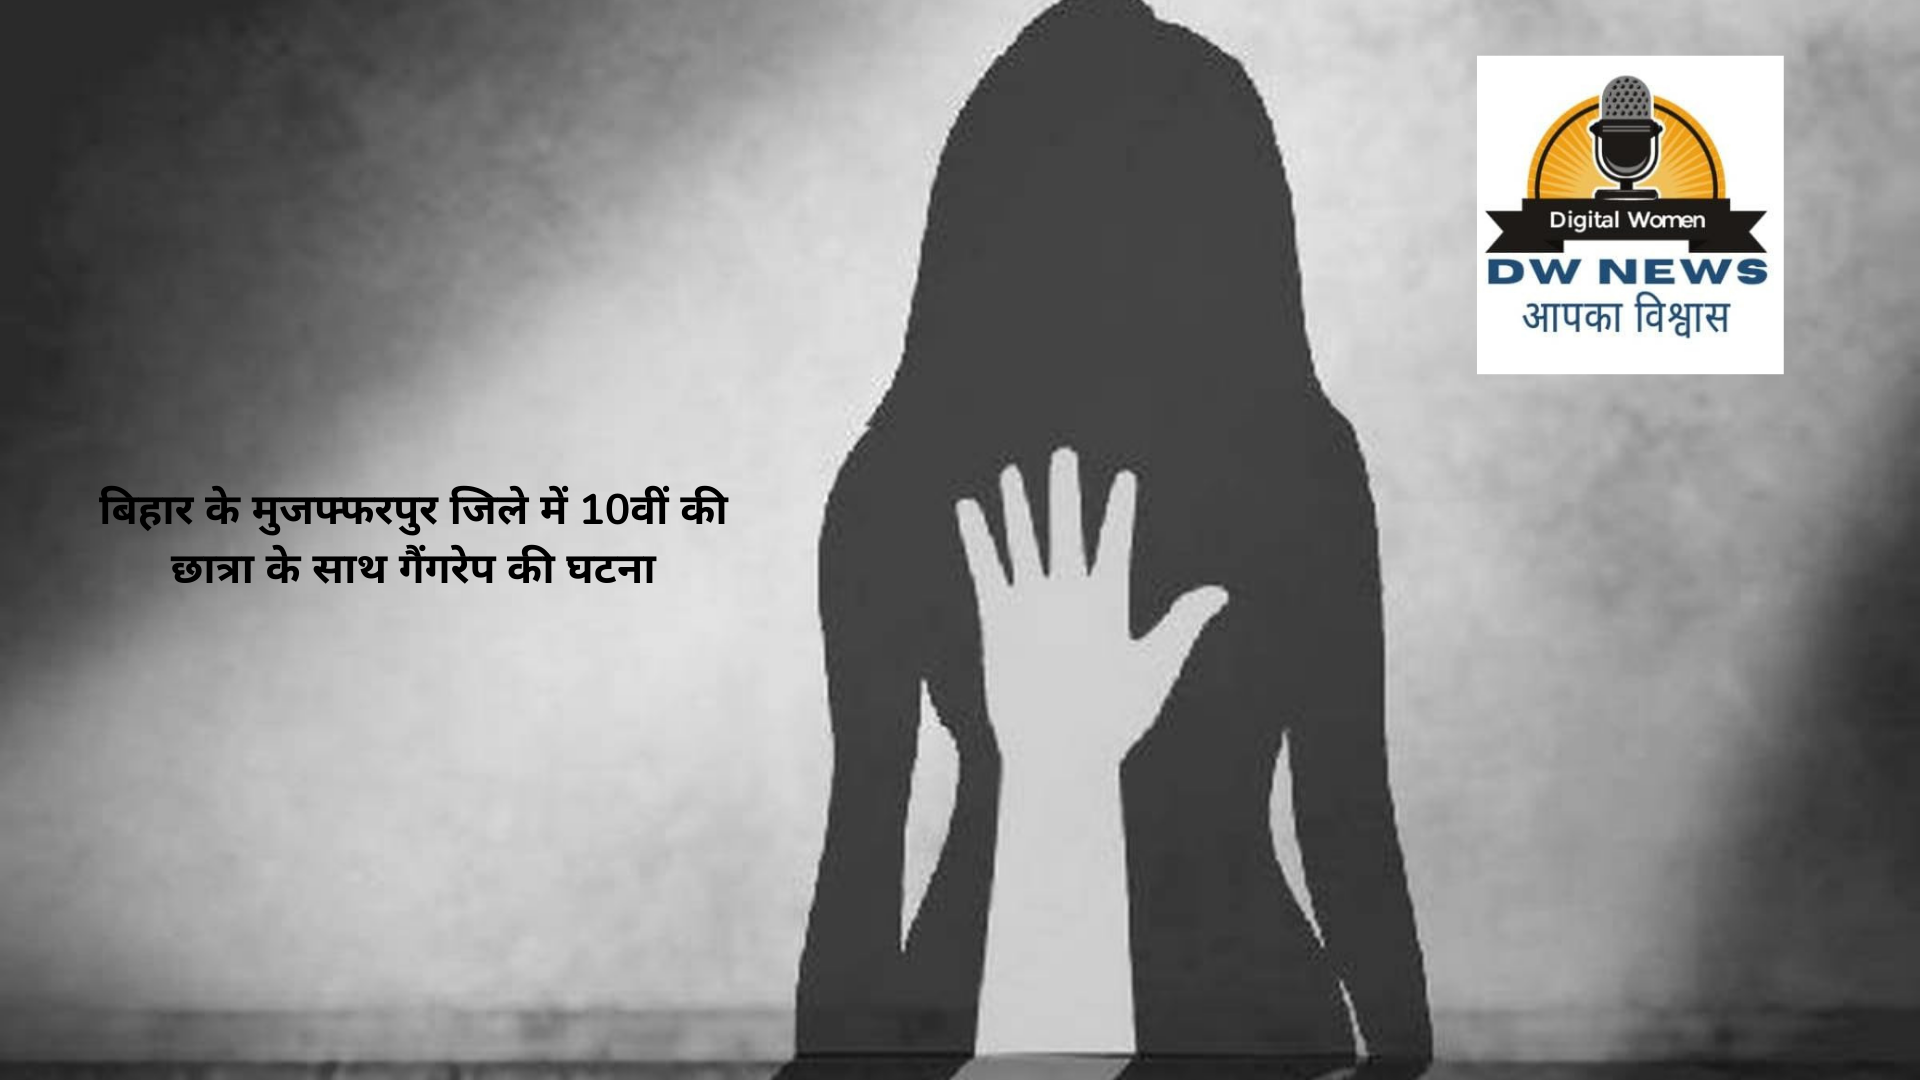 Class 10th Girl Brutally Gangraped In Bihar's Muzaffarpur